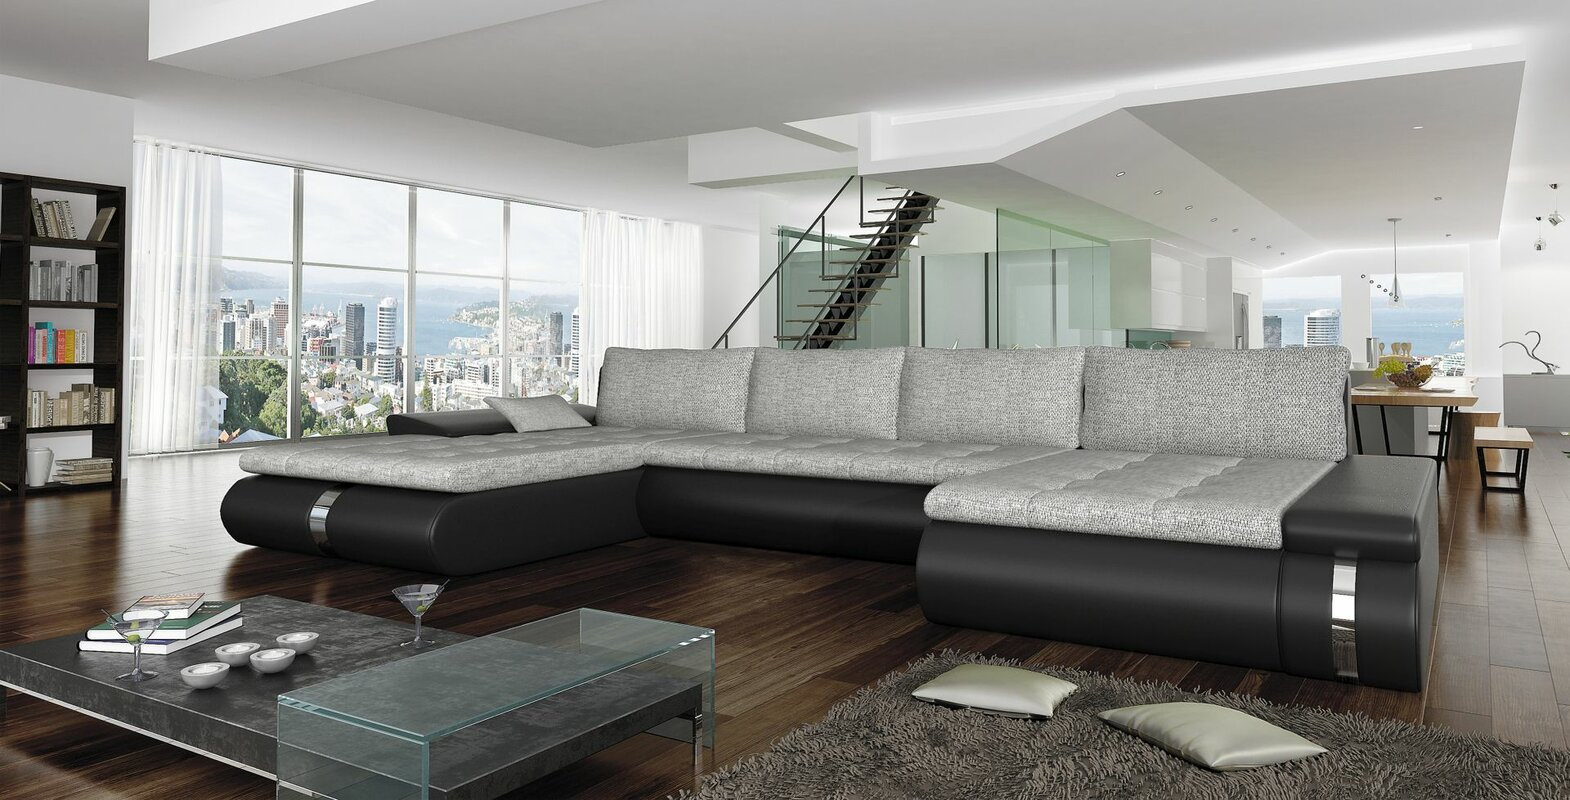 big comfy sectional couch wayfair rh wayfair com sectional sofas for large rooms large sectional sofas canada